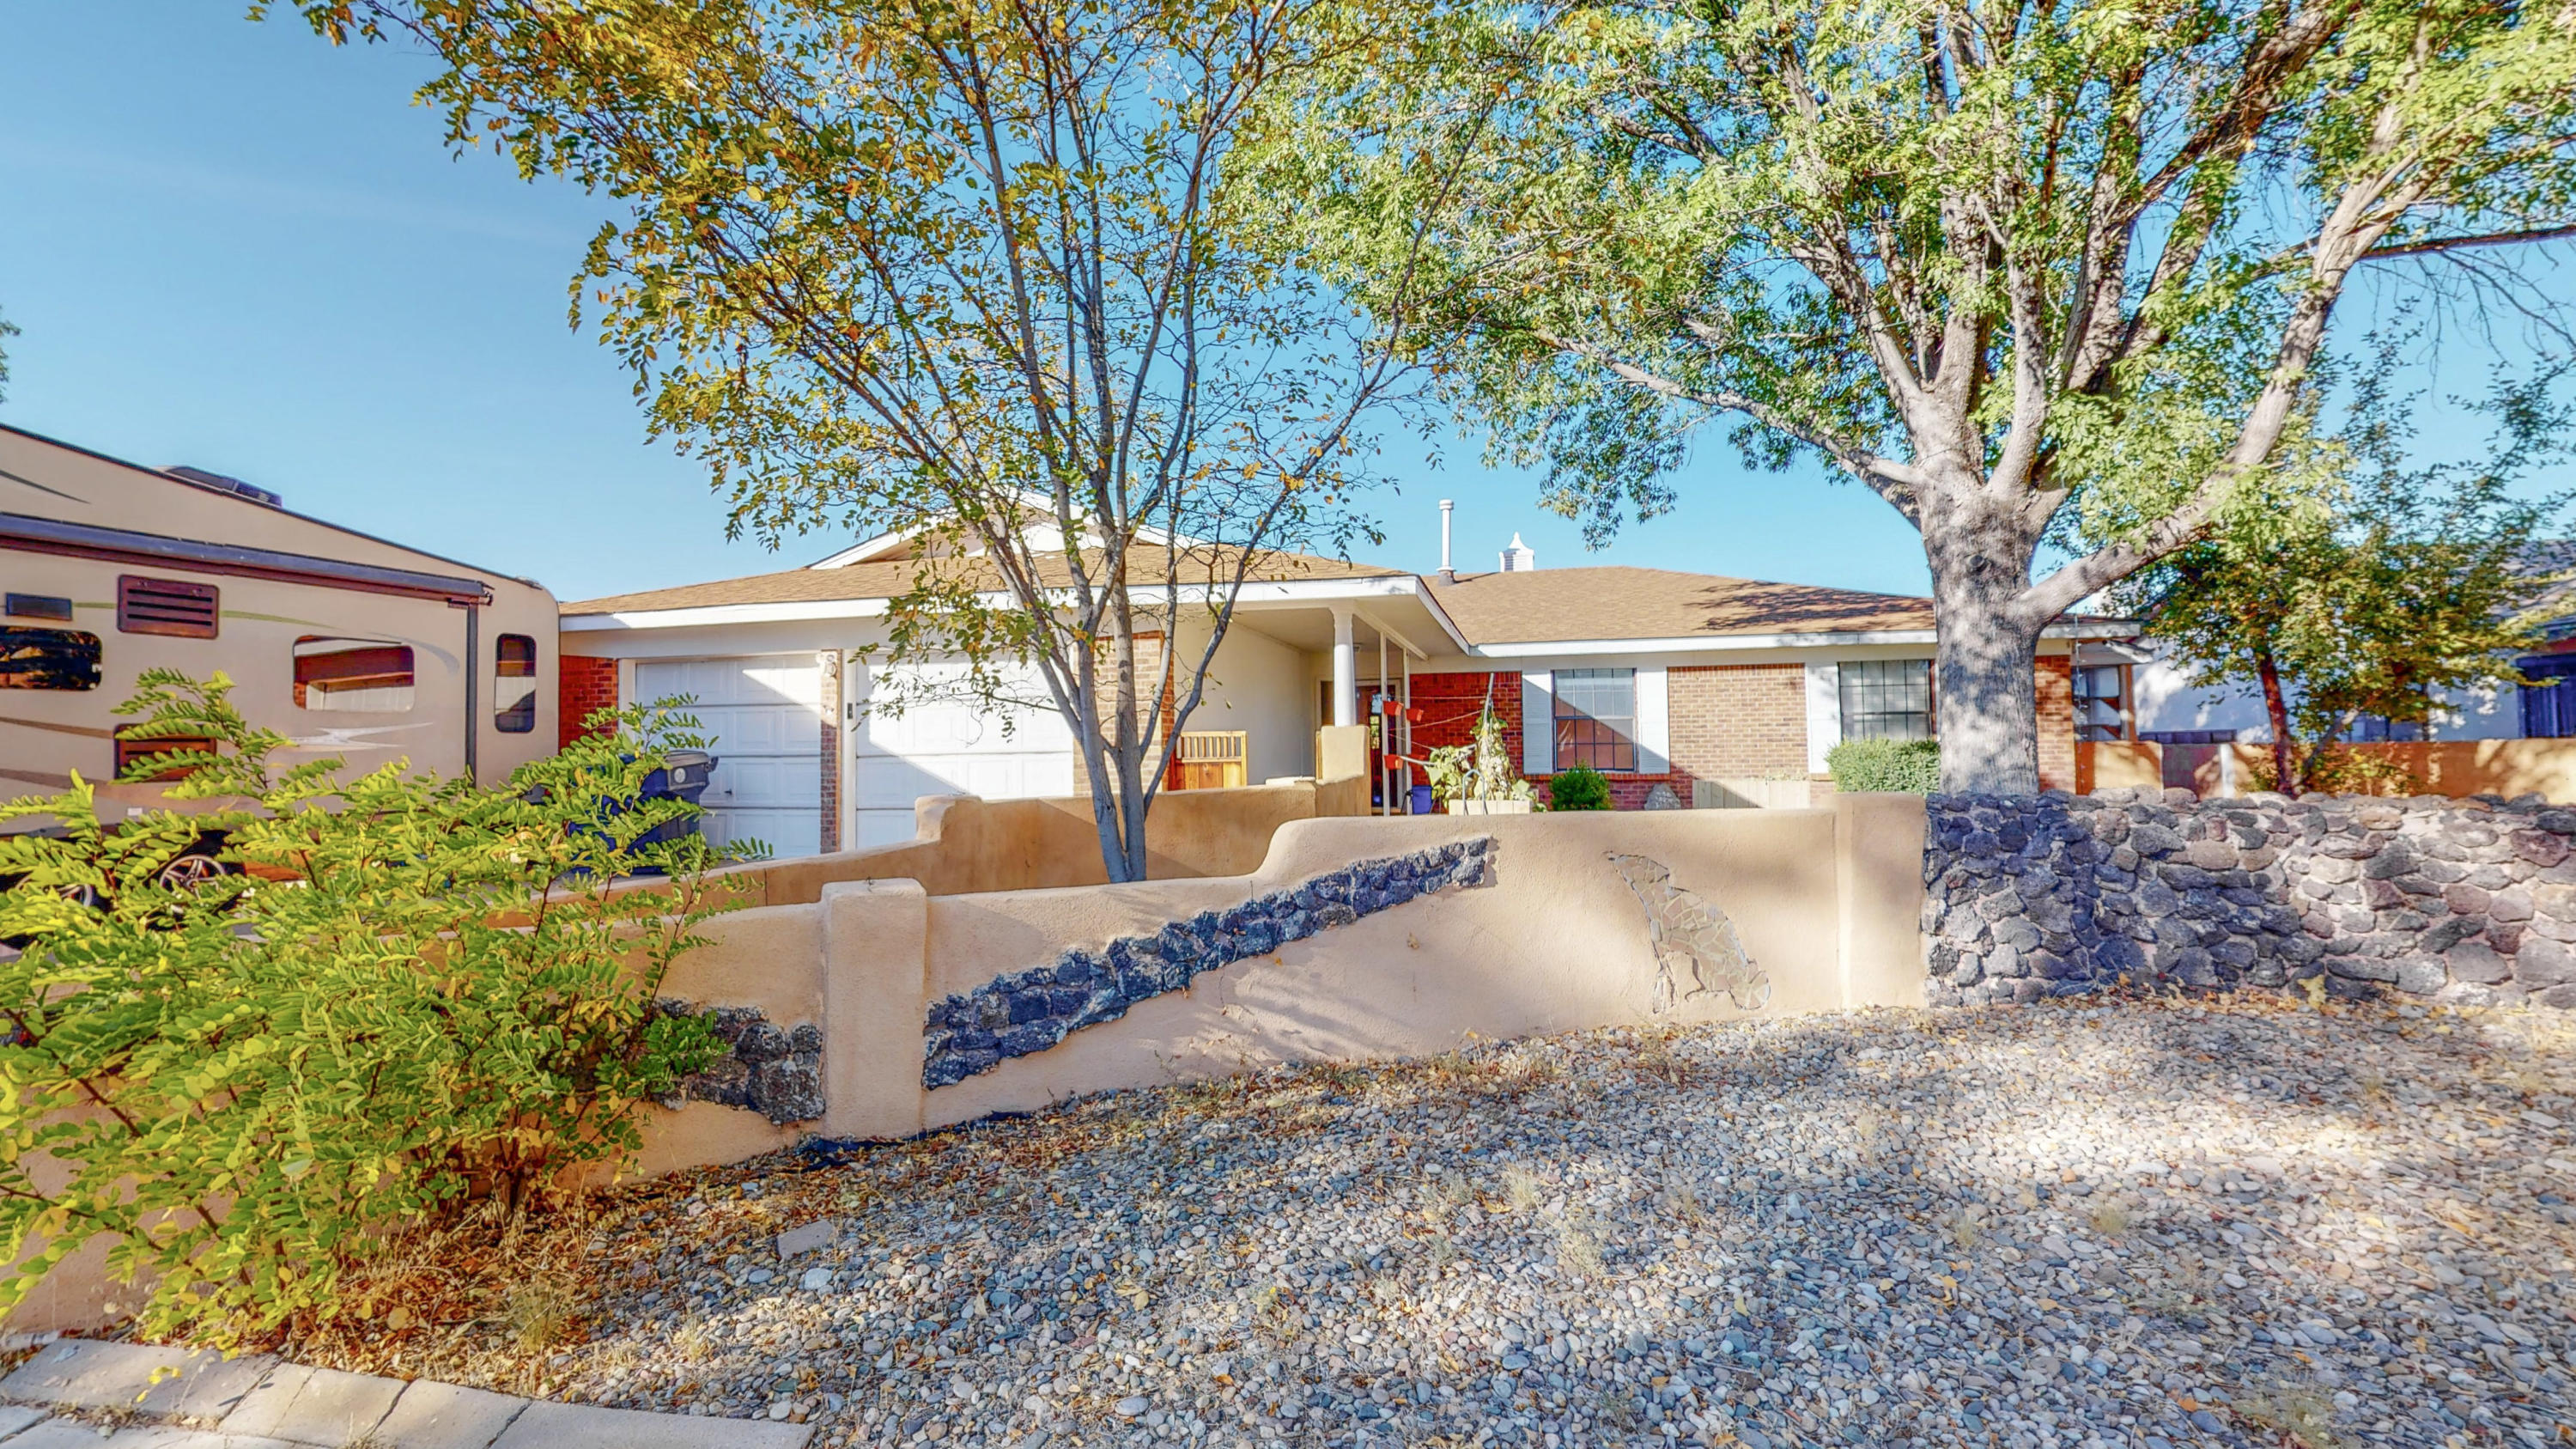 Open House- Saturday 11-1 & Sunday 1-3. This charming 3 bedroom, 2 bath home with plenty of storage is ready for new owners! Tucked away in the desirable Taylor Ranch neighborhood.  This home features a brick exterior and a grass front and backyard with ample room for your garden. Don't forget to relax in the hot tub on chilly New Mexico nights! Enjoy meals in the cozy breakfast nook. Further updates include a new furnace and refrigerated air unit as well as a new water heater. Roof is only 7 years old! Close by grocery stores, shopping, and restaurants. Schedule your showing today!